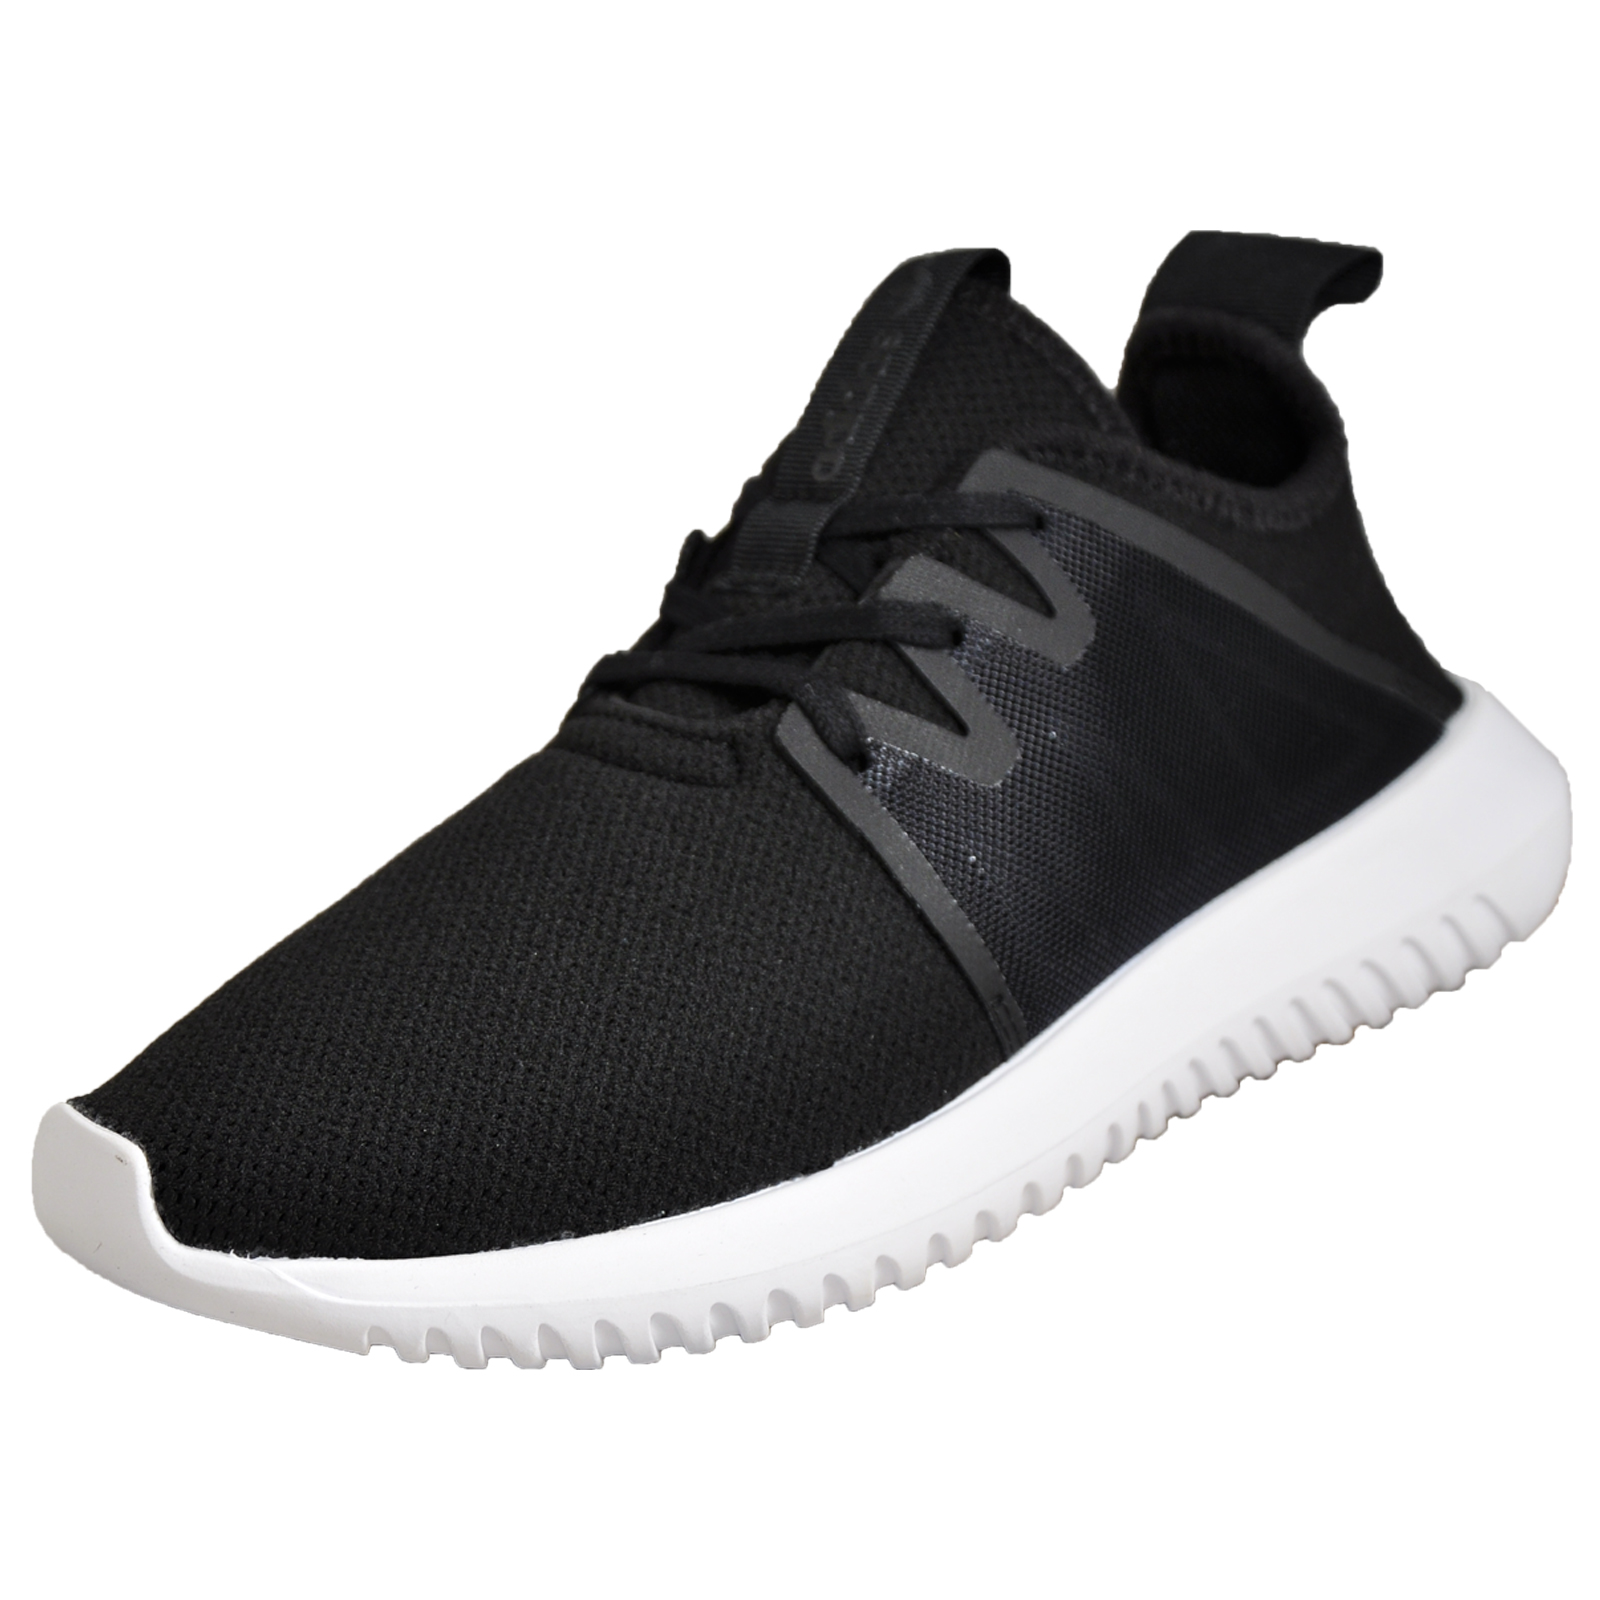 Details about Adidas Originals Tubular Viral 2 Women s Ladies Running Shoes  Fitness Gym Traine 6fc85453f